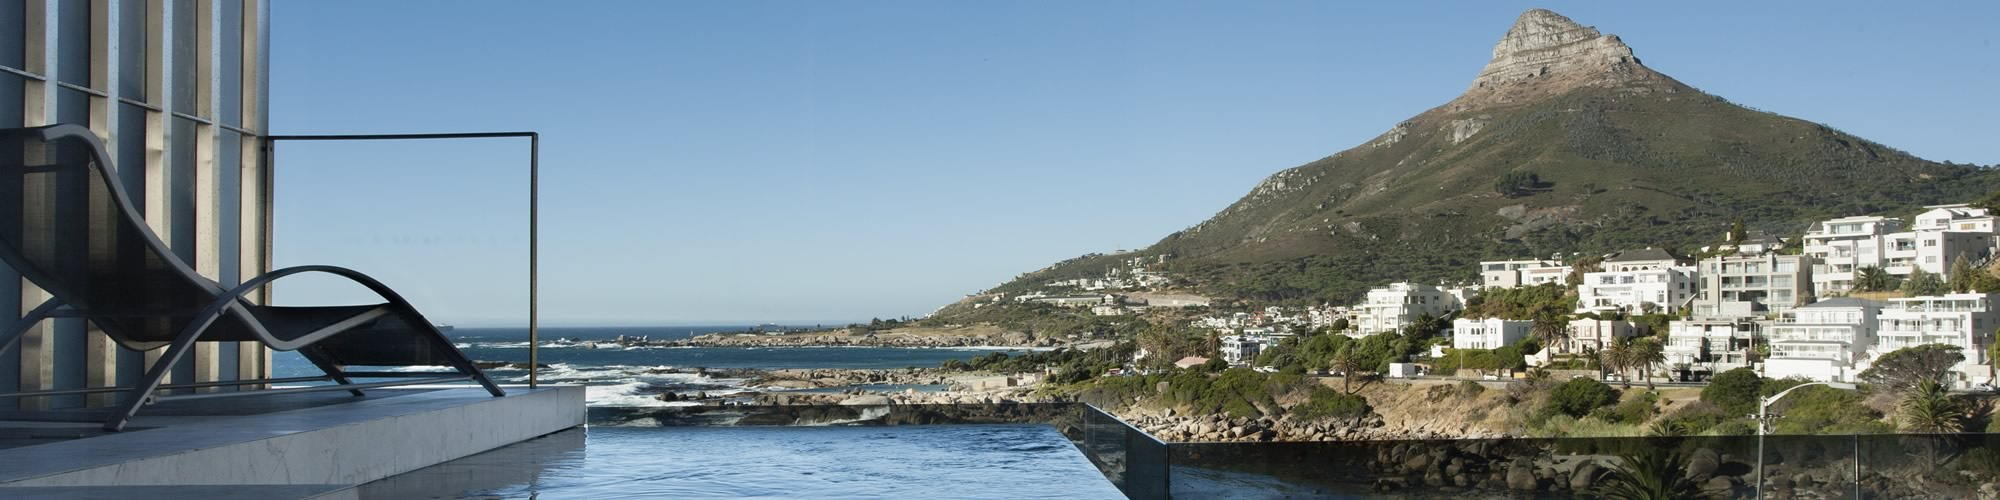 Ebb Tide apartments Camps Bay